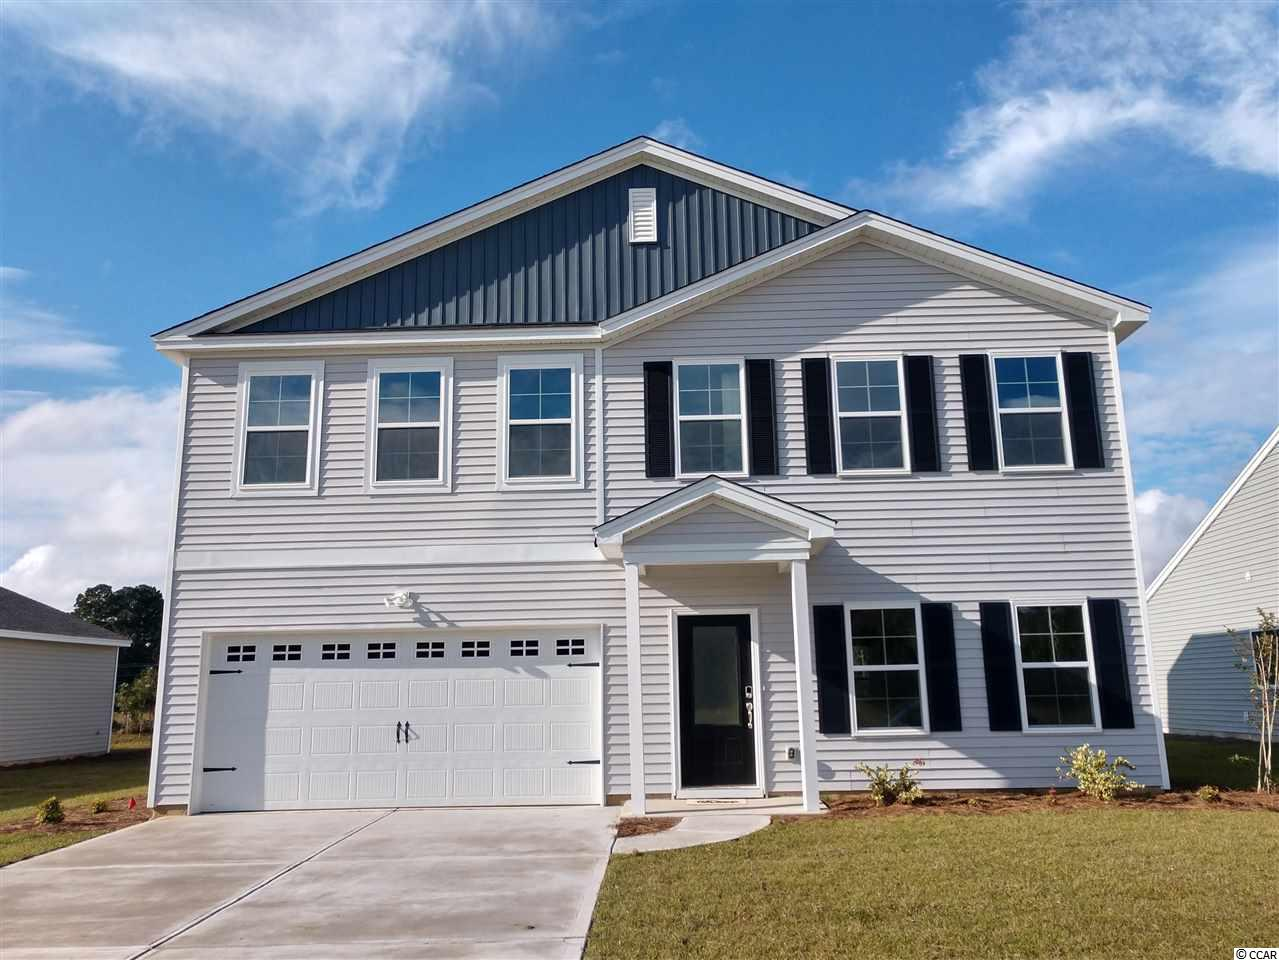 New Community with Pool!! Sugarloaf Now Selling!! This McDowell plan is under construction, to be completed by July 2020. With 2,237 Htd SF, this 2-story home has 4 bedrooms, including a flex room downstairs, 2.5 baths, plus aloft! Plenty of space for everyone! Tankless Gas Hot Water, Gas Heat, and Gas Range/Oven, Stainless Steel appliances, Granite in Kitchen, Wood-look plank waterproof flooring, crown molding, Covered patio with fan, Lawn Irrigation system, and more! Pictures are of a McDowell plan in another community. All measurements are considered accurate but not guaranteed. Buyer to verify. Your buyers will have Peace of Mind with Mungo Homes Nationally Recognized Customer Service Care! All measurements are approximate. Buyer should verify.